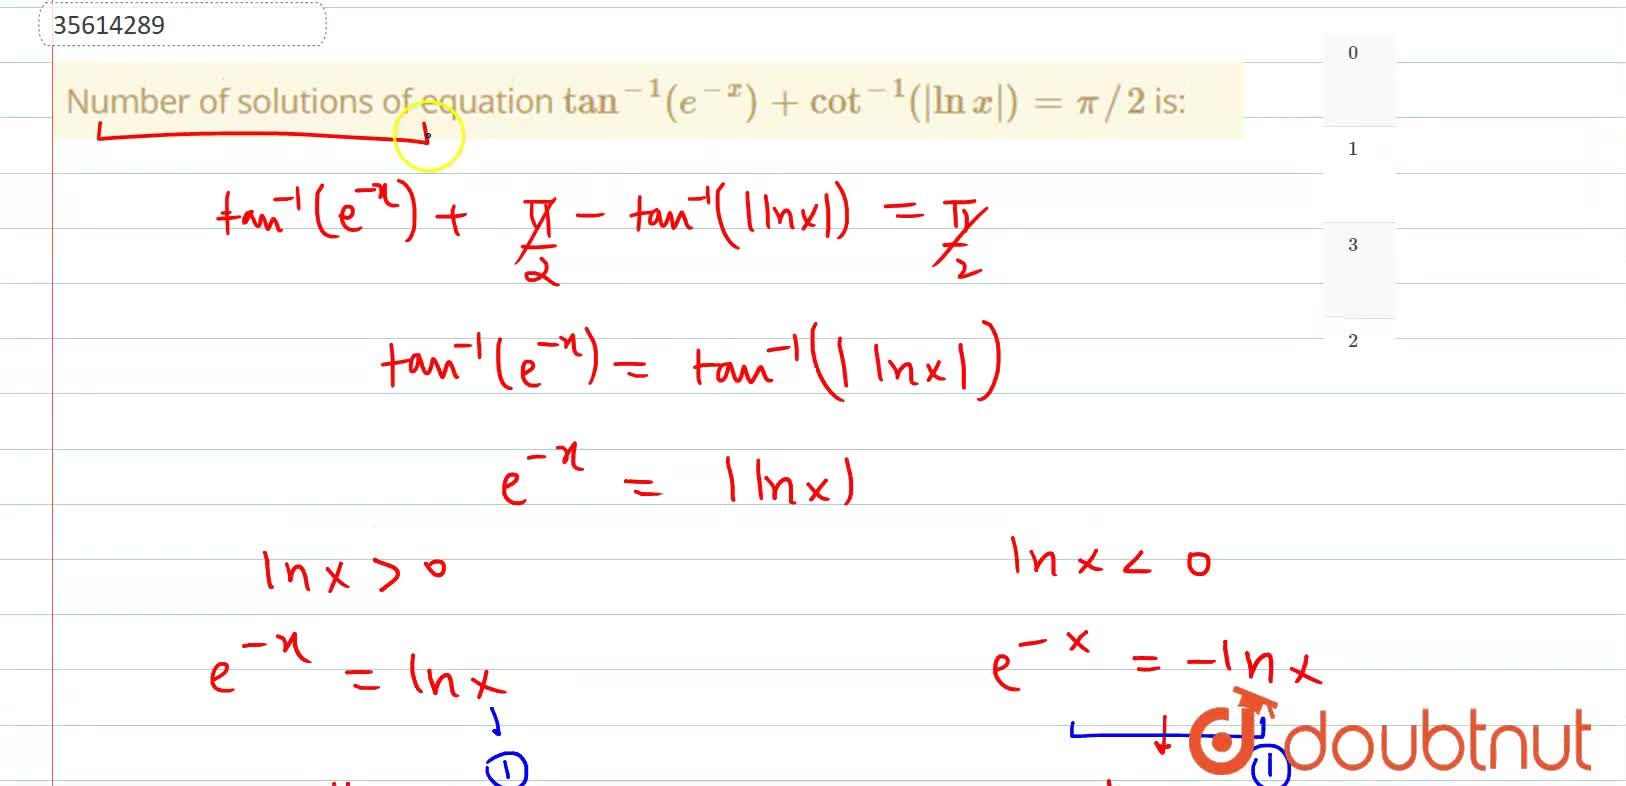 Number of solutions of equation tan^(-1)(e^(-x))+cot^(-1)(|lnx|)=pi,,2 is: